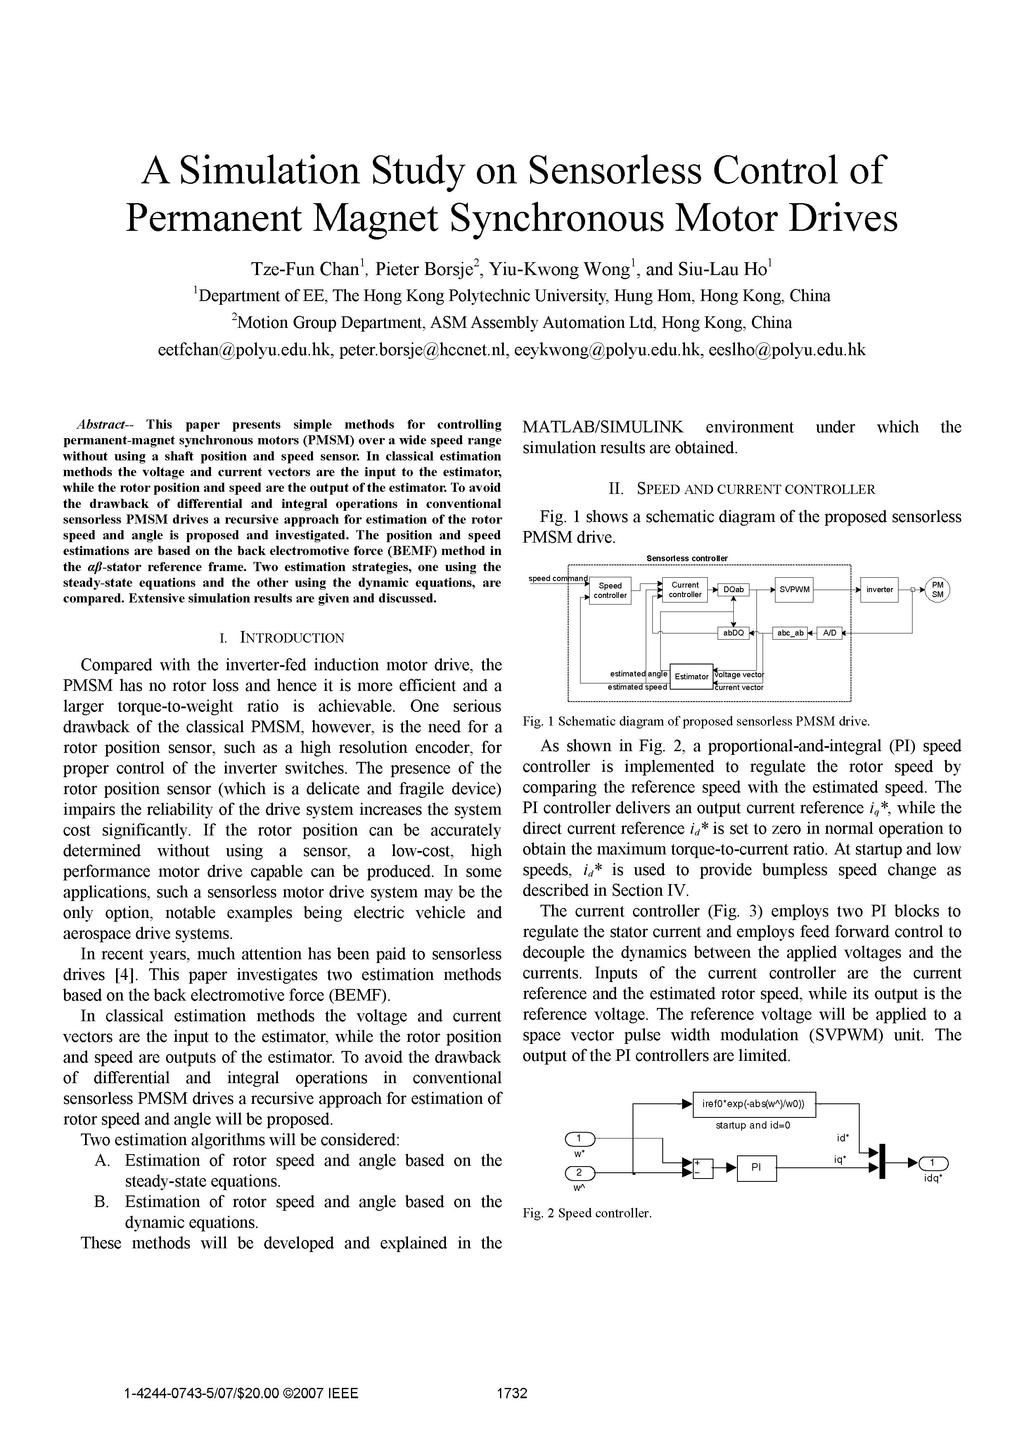 A Simulation Study on Sensorless Control of Permanent Magnet Synchronous Motor Drives Tze-Fun Chan', Pieter Borsje2, Yiu-Kwong Wong', and Siu-Lau Ho' 'Department of EE, The Hong Kong Polytechnic